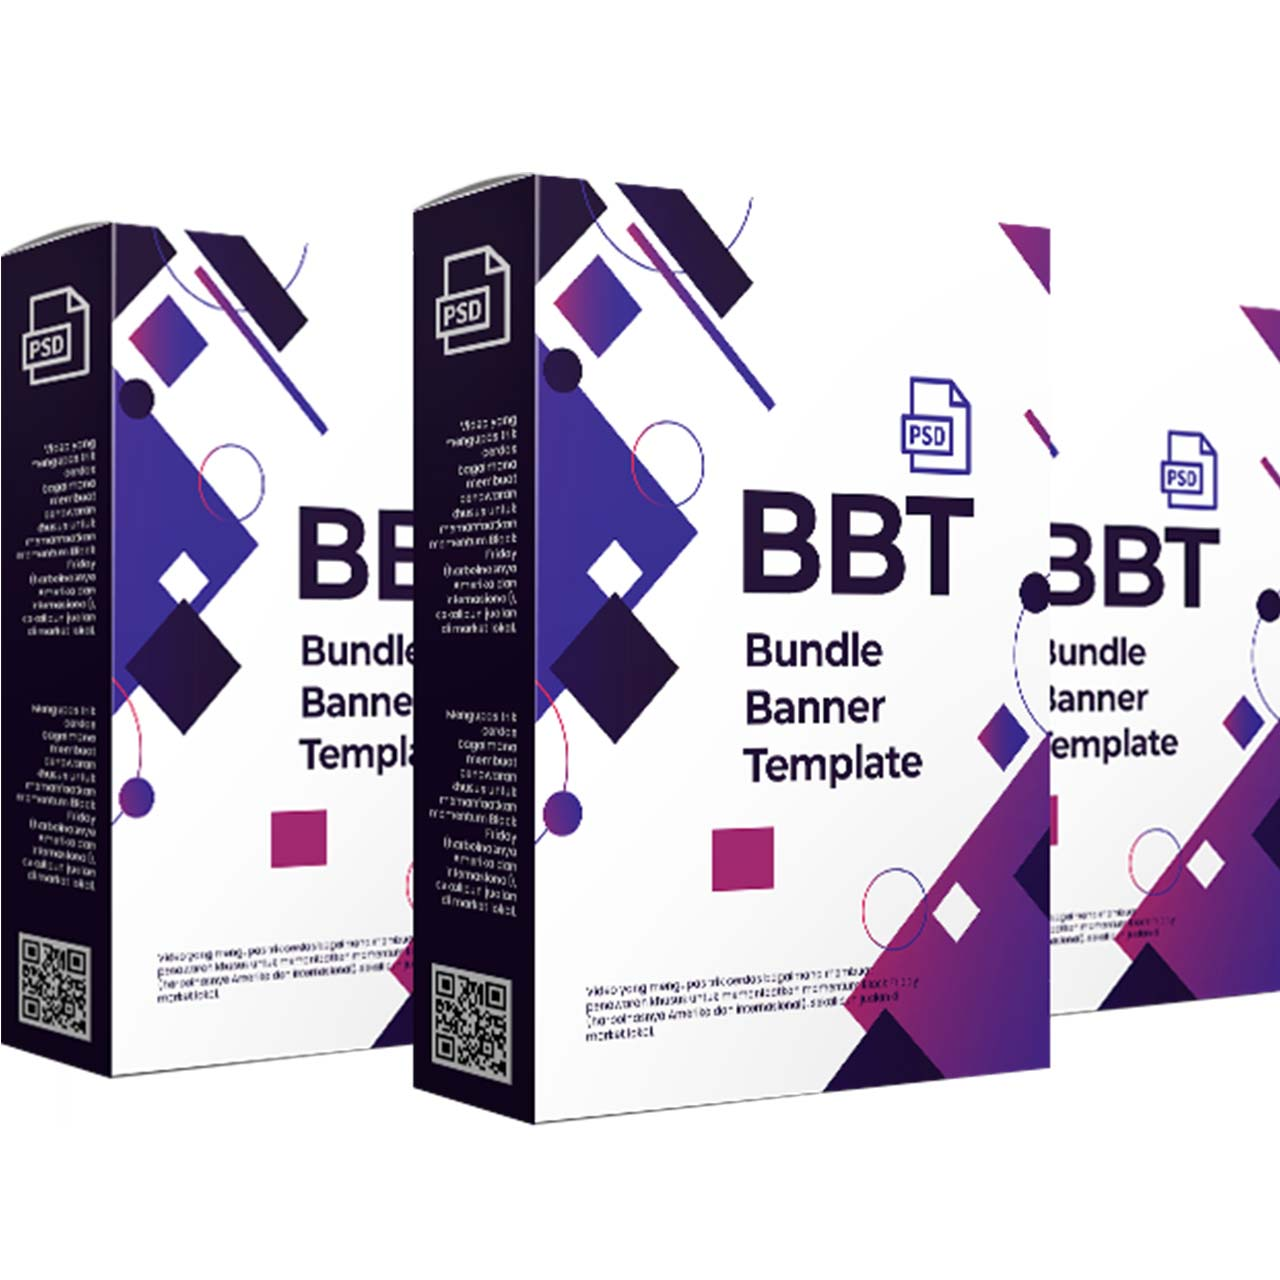 Bundle Banner Template